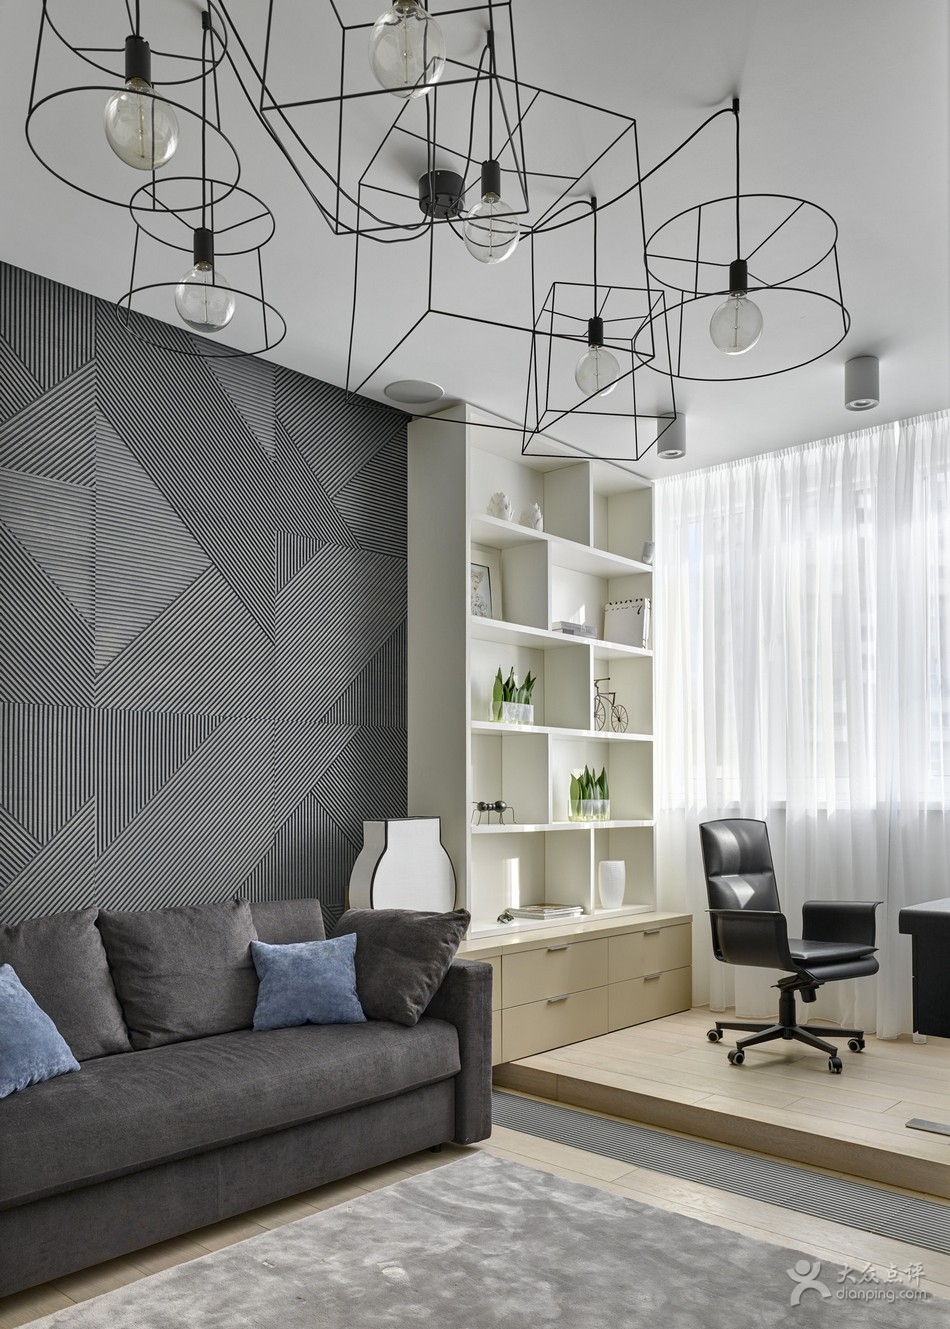 10 MODERN APARTMENT DESIGNS TO INSPIRE YOU modern apartment 10 MODERN APARTMENT DESIGNS TO INSPIRE YOU 10 INSPIRING MODERN APARTMENT DESIGNS 4